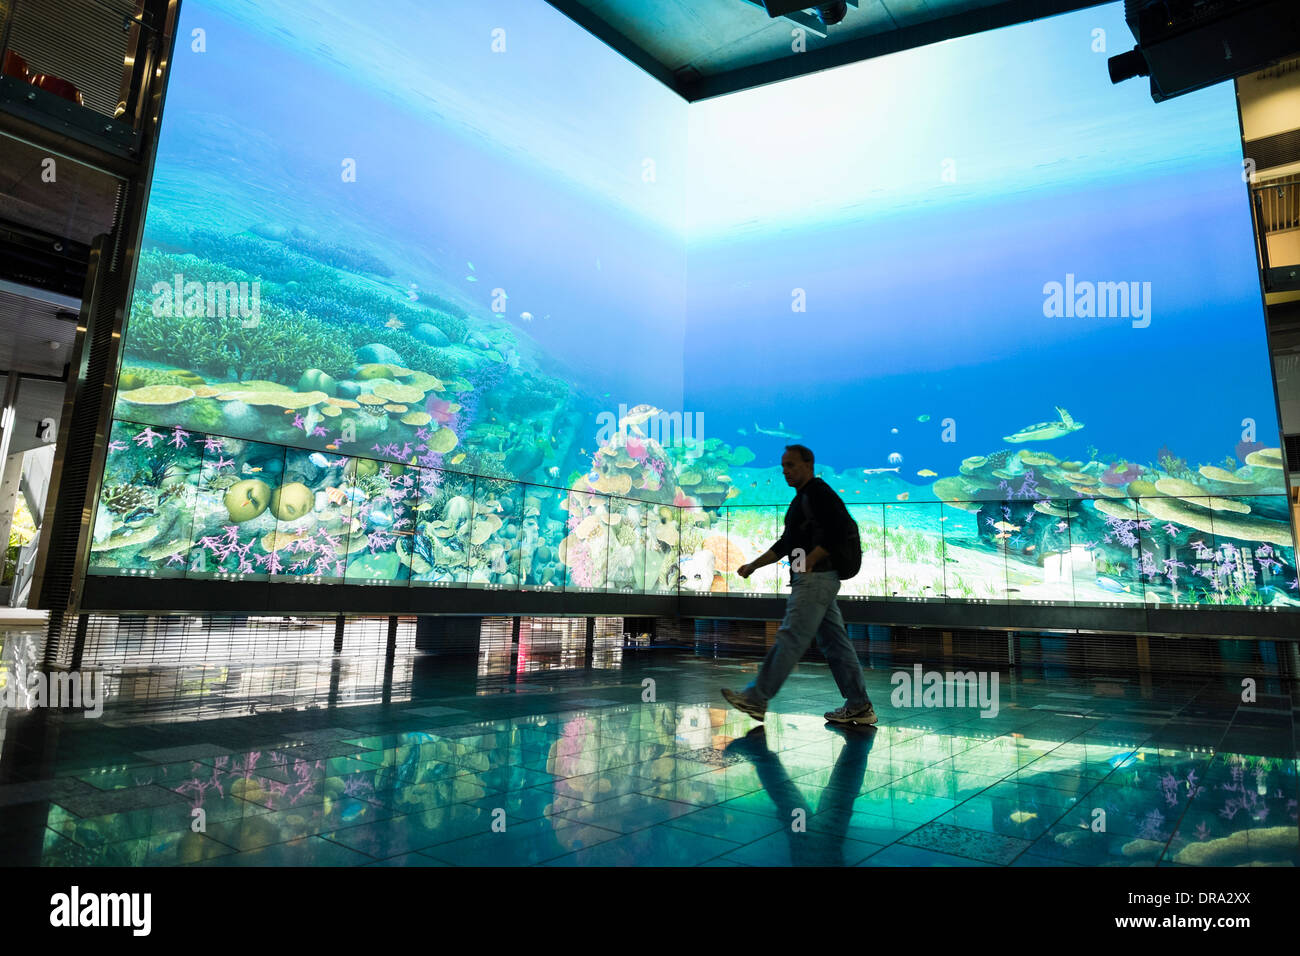 Large multimedia screen showing virtual reef at The Cube centre at Queensland University of Technology QUT in Brisbane Australia - Stock Image